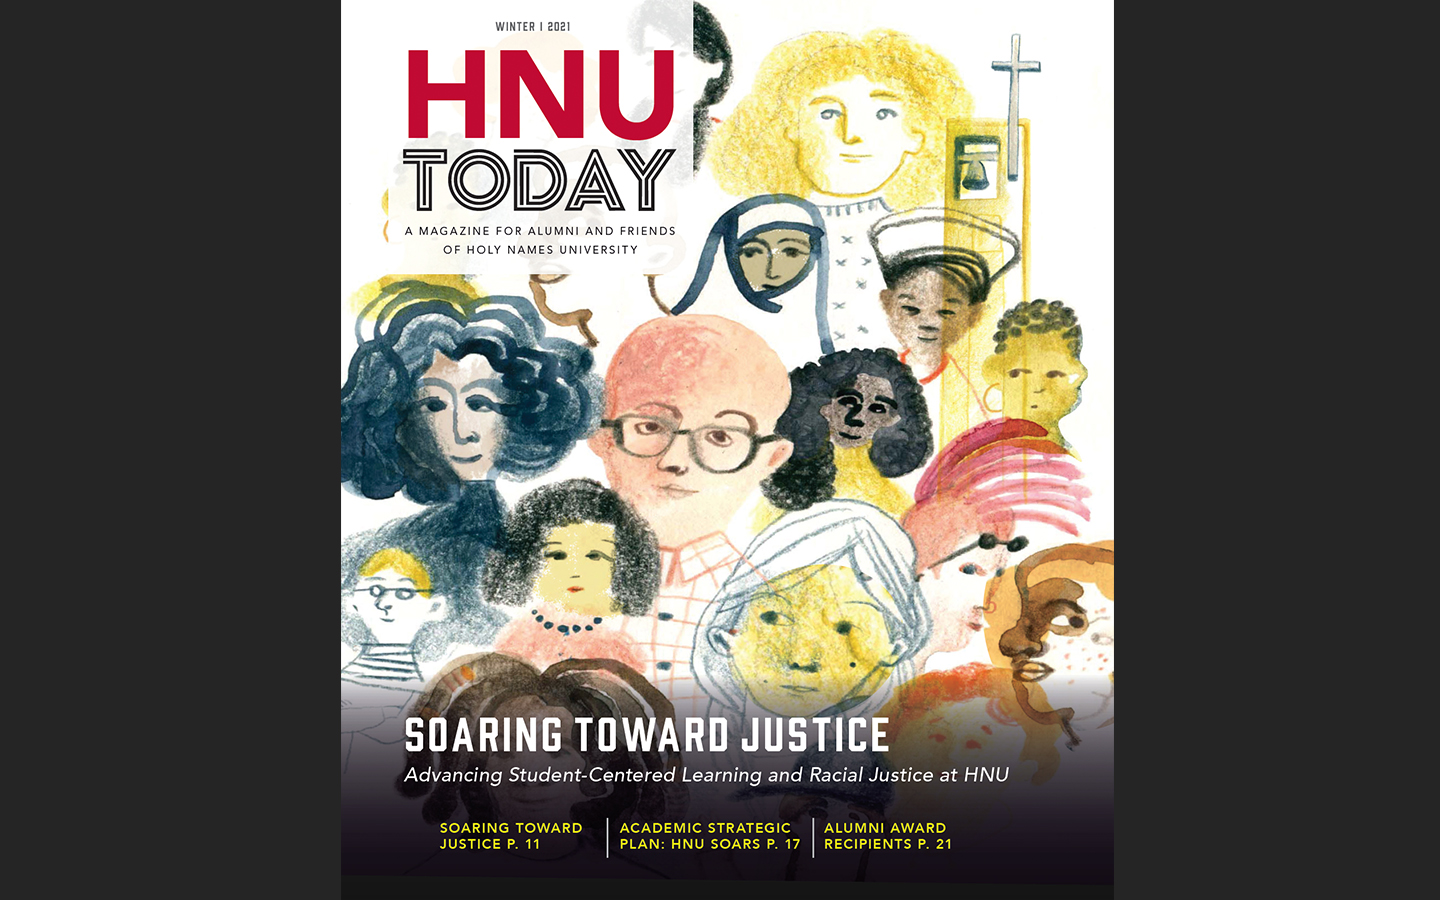 HNU Today magazine cover